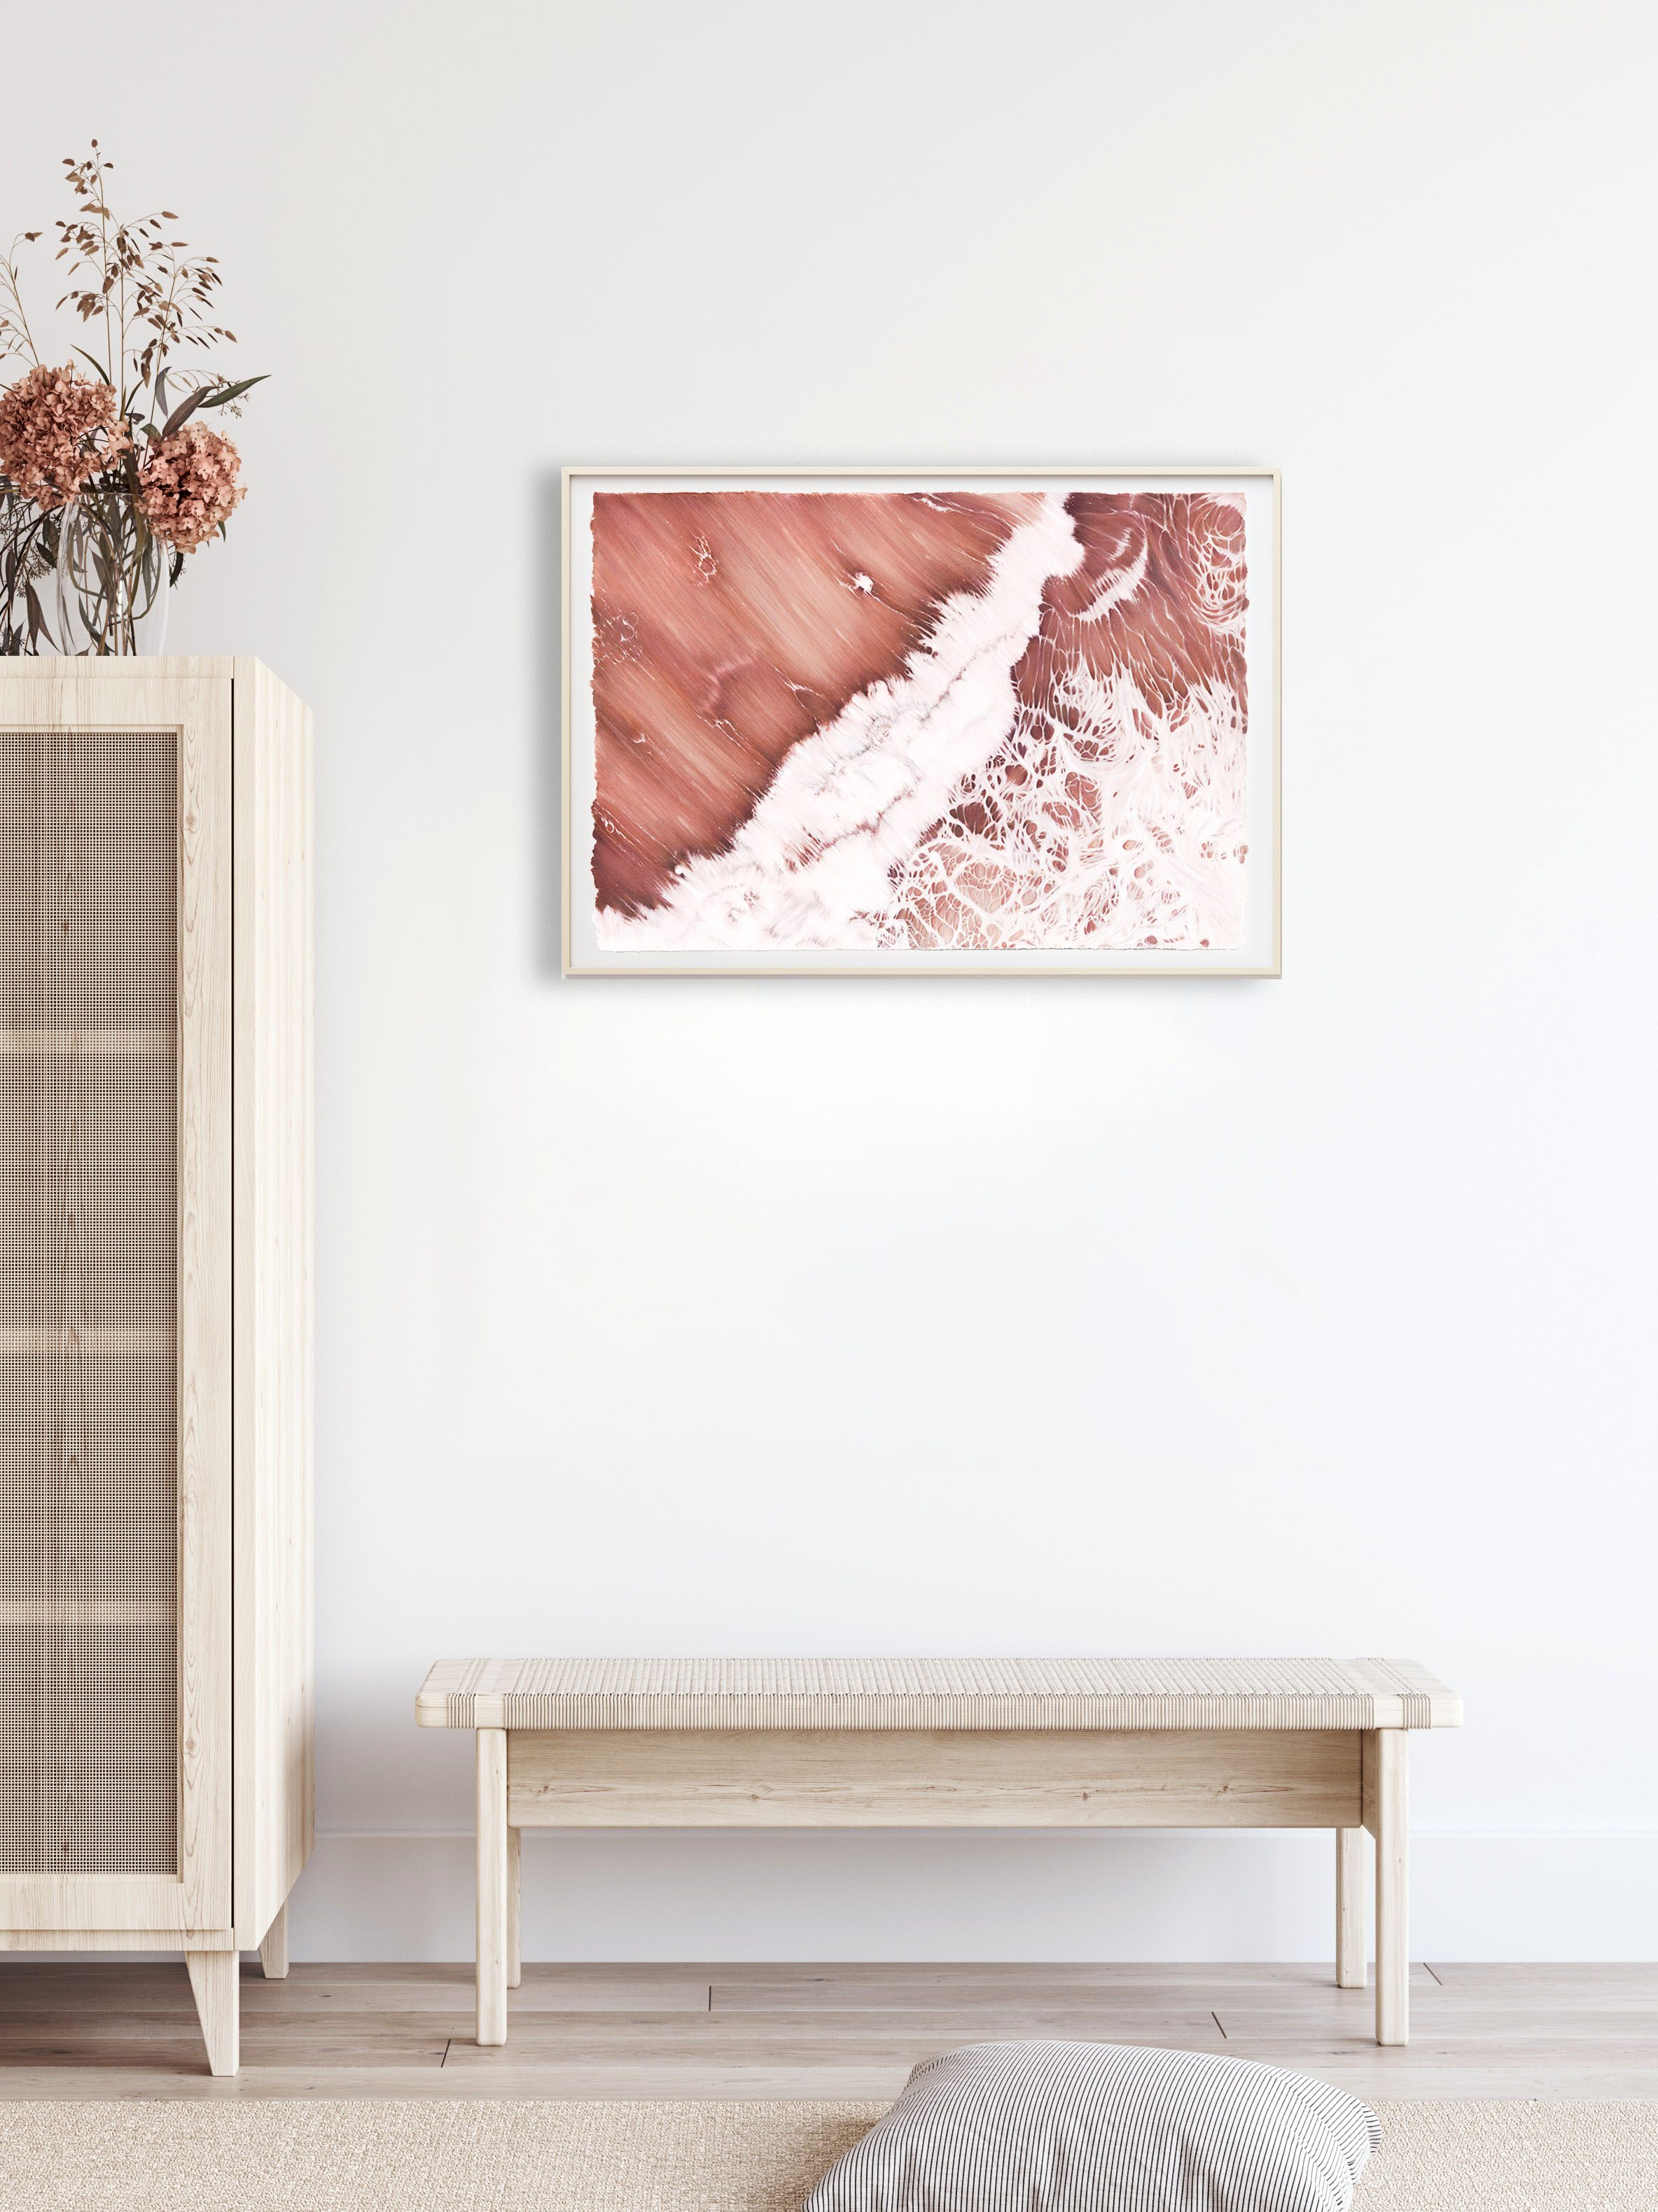 'The Sea is a Woman' artwork by Bethany Moffat hanging on a wall